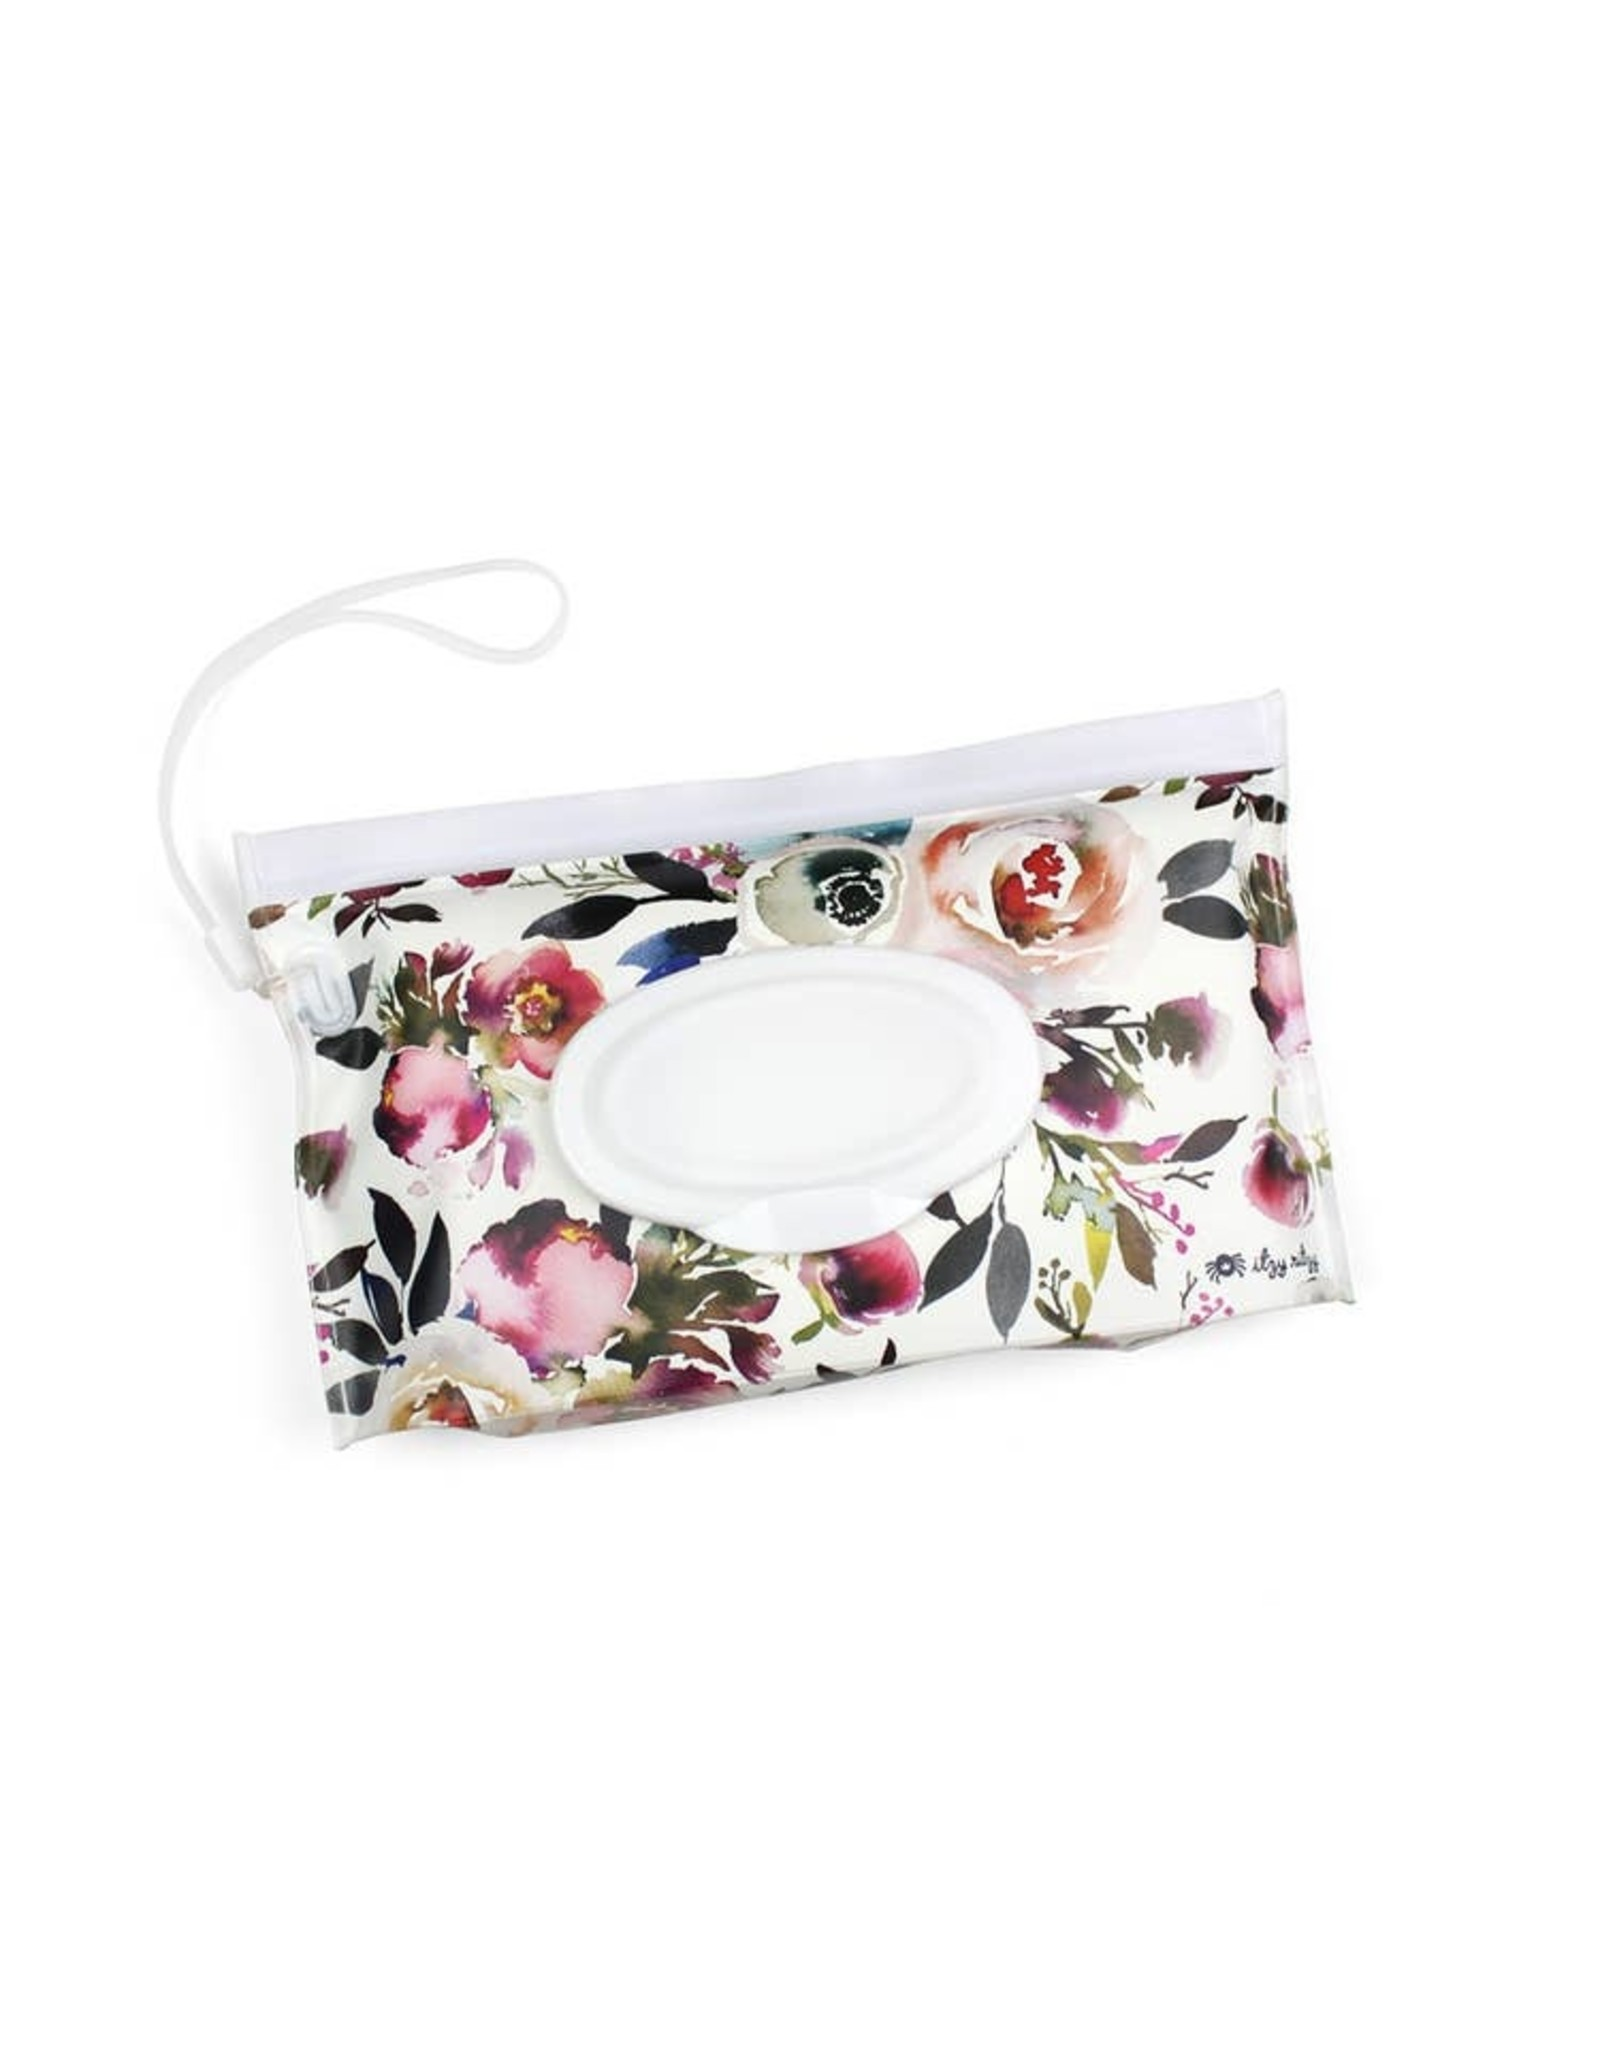 Itzy Ritzy Itzy Ritzy - Take & Travel Pouch Wipes Case Blush Floral